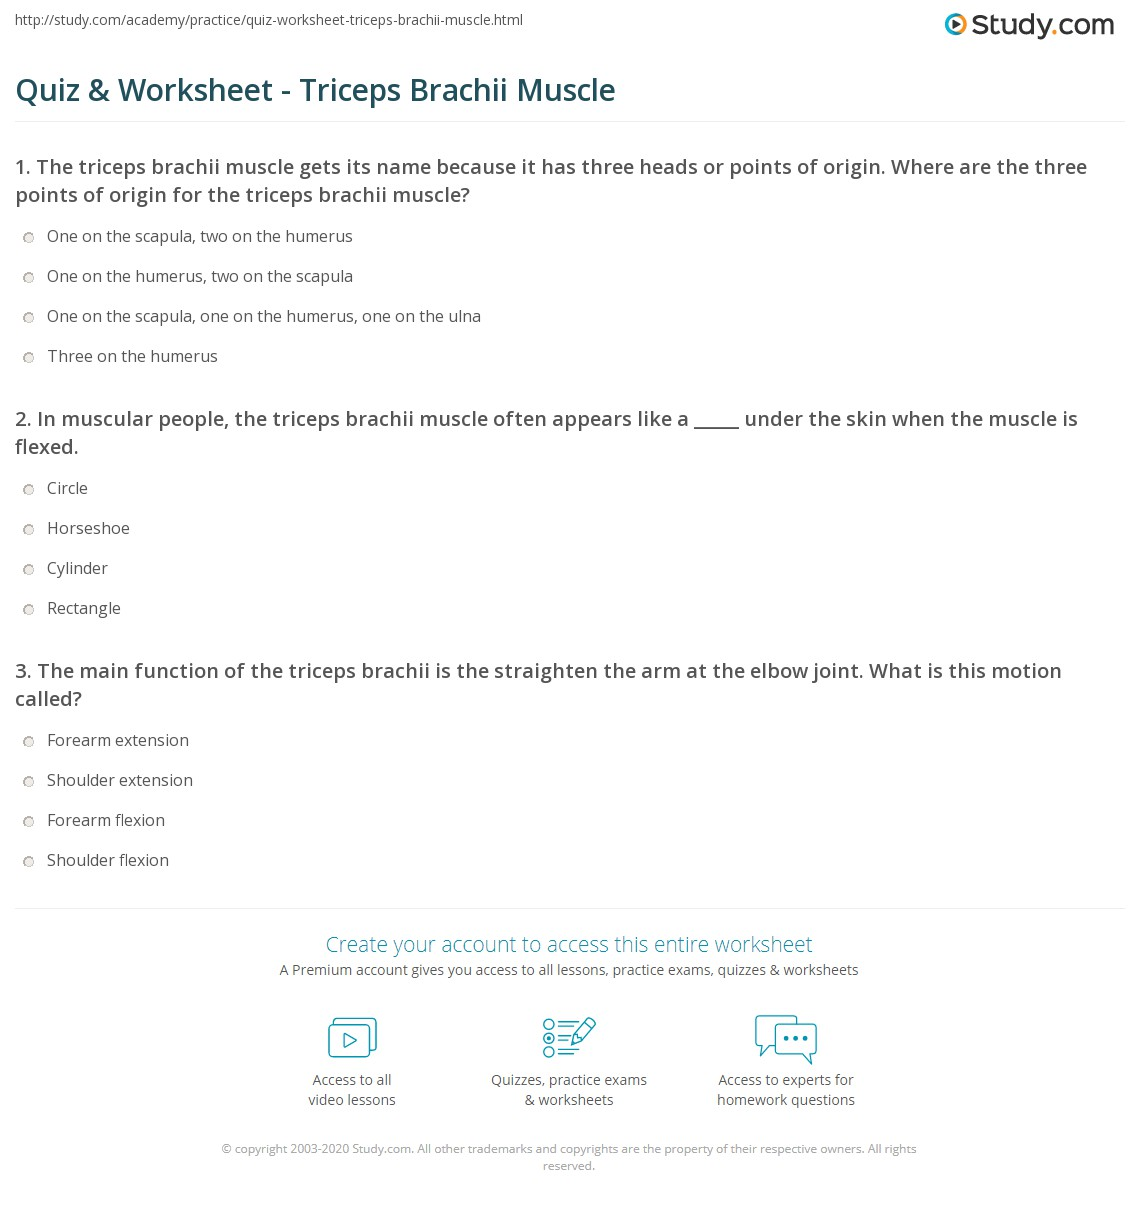 Quiz Worksheet Triceps Brachii Muscle Study